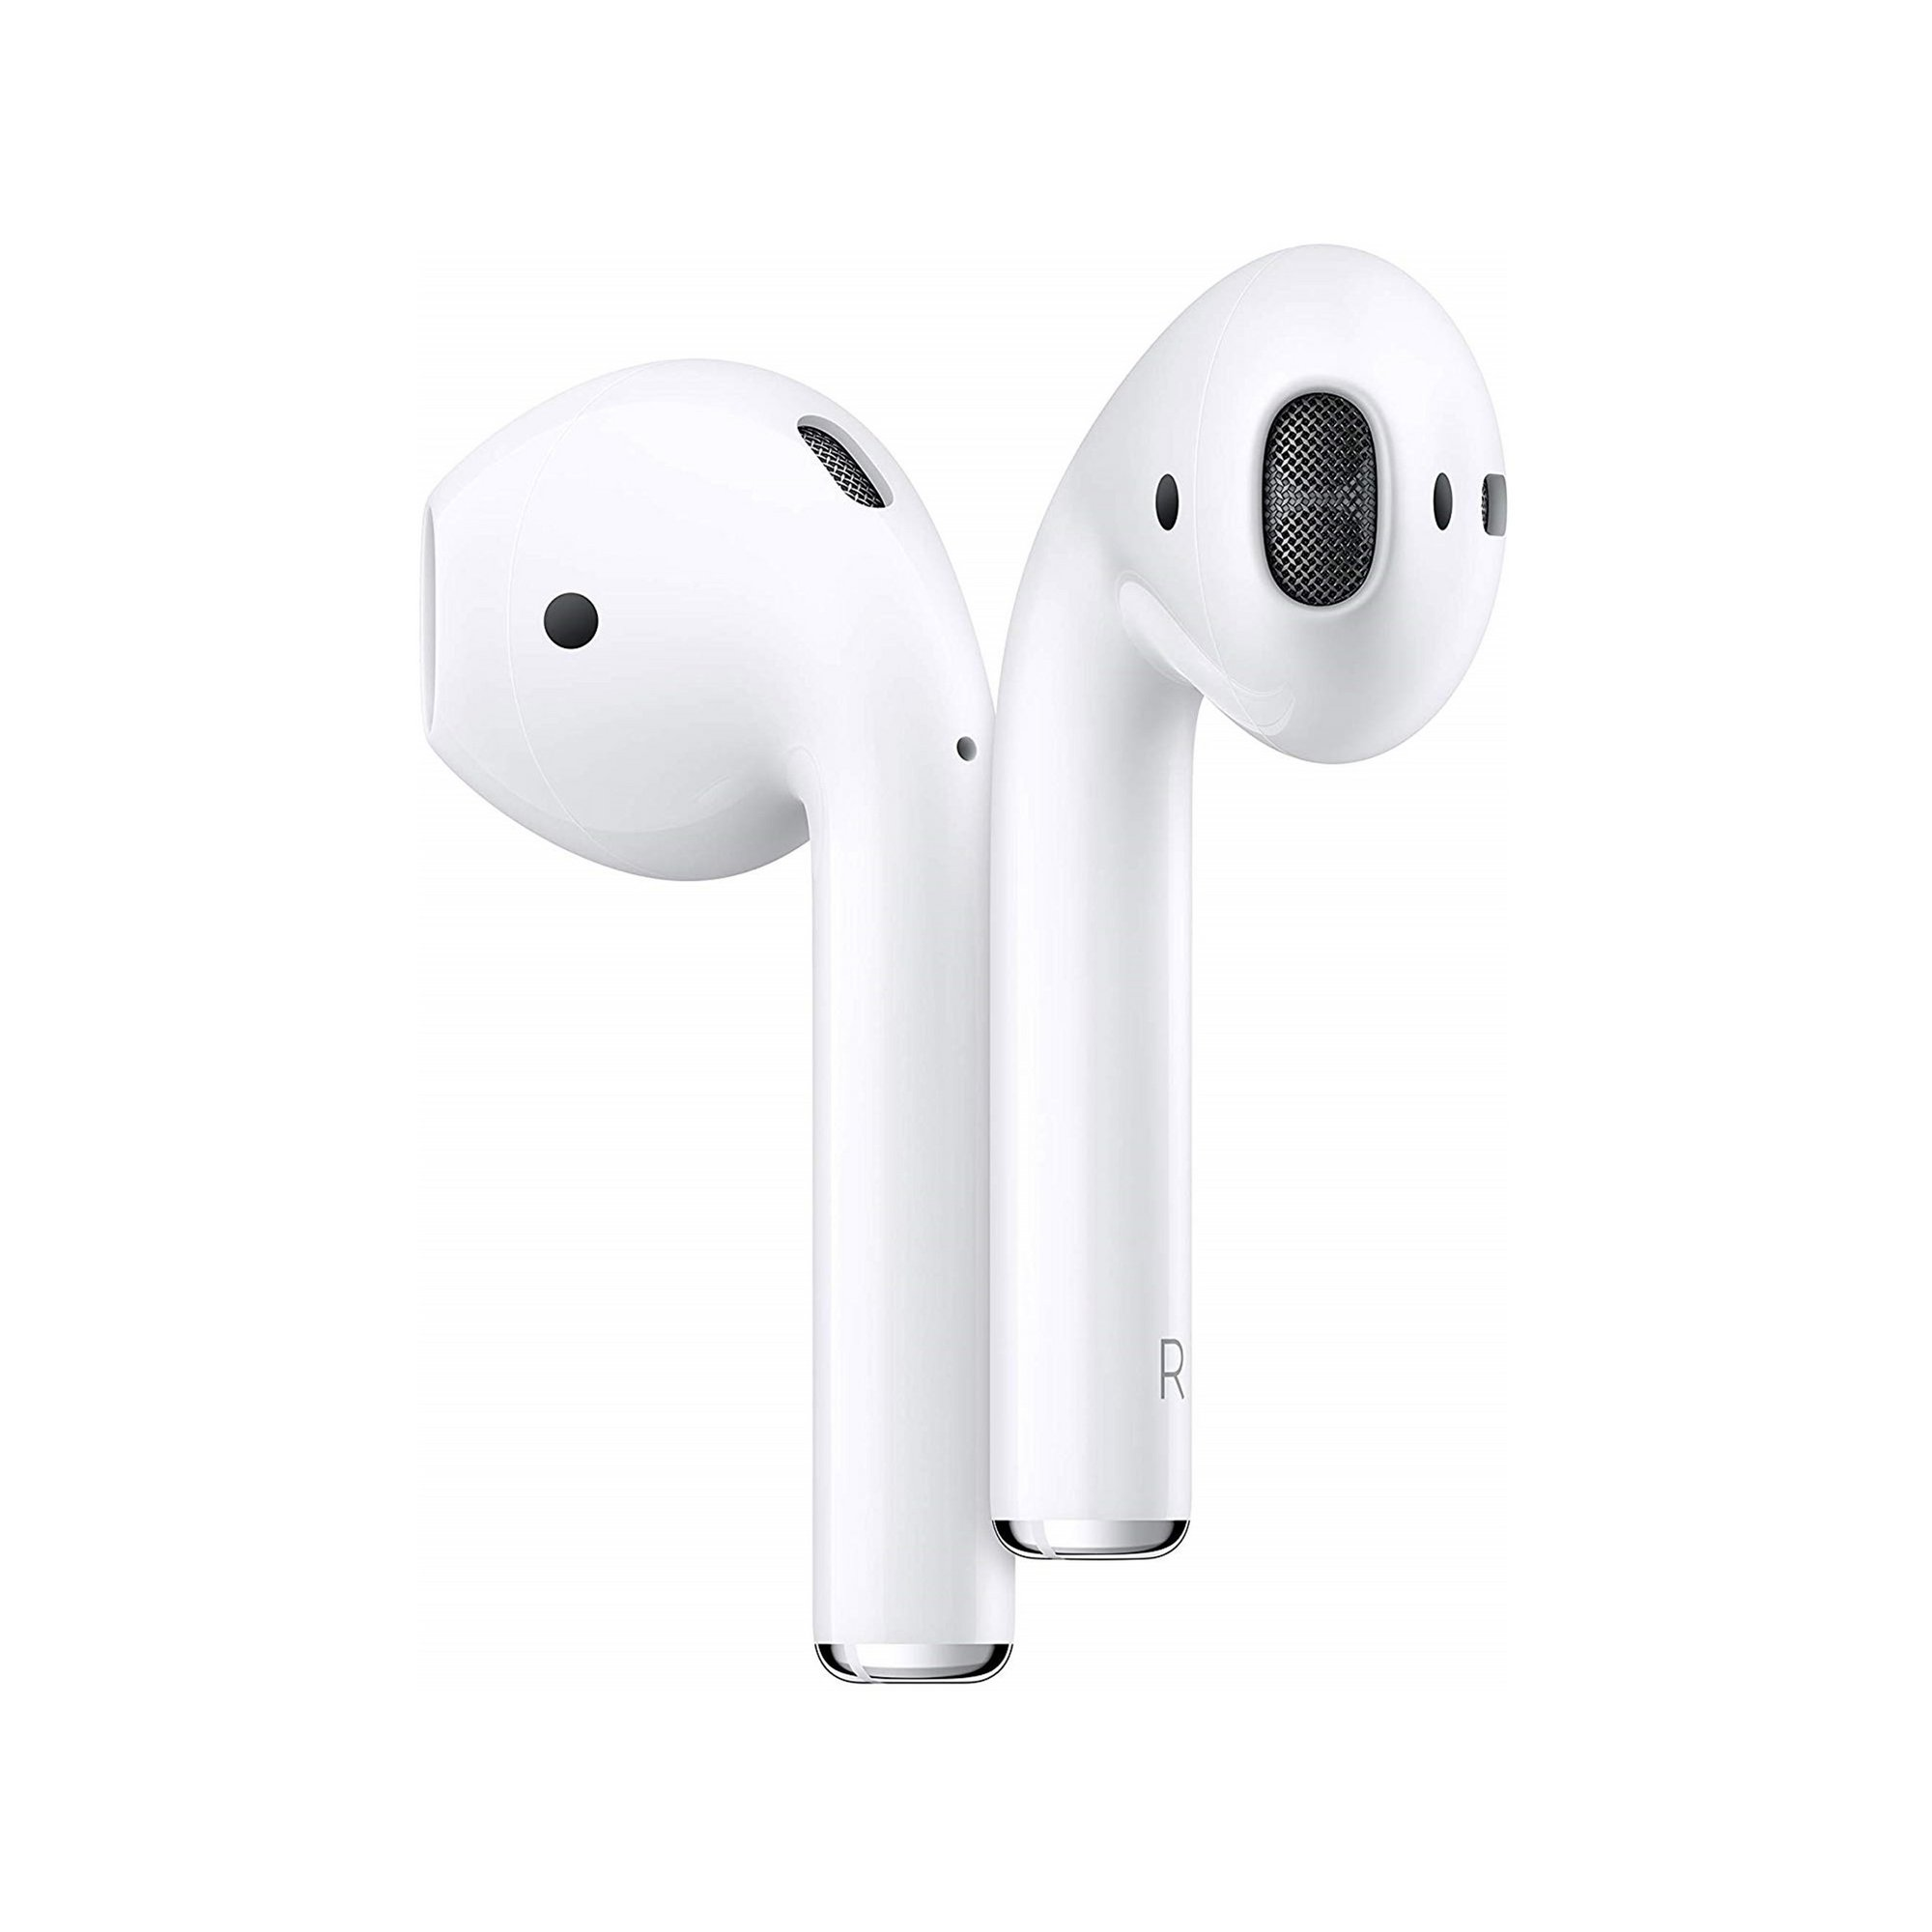 Image of Apple AirPods 2nd Generation with Charging Case